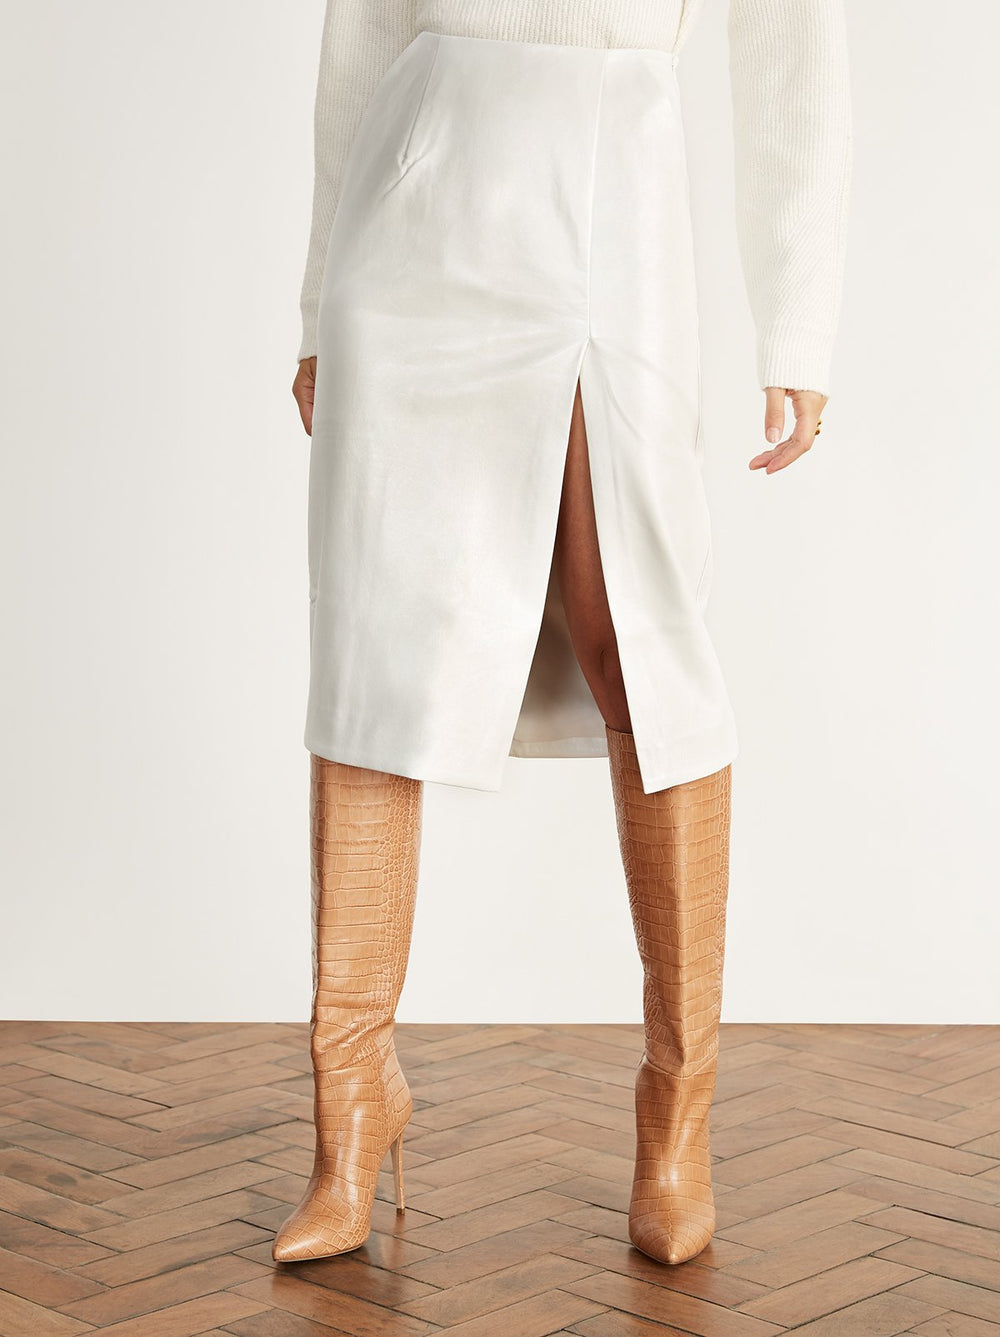 Carine Cream Vinyl Pencil Skirt by KITRI Studio